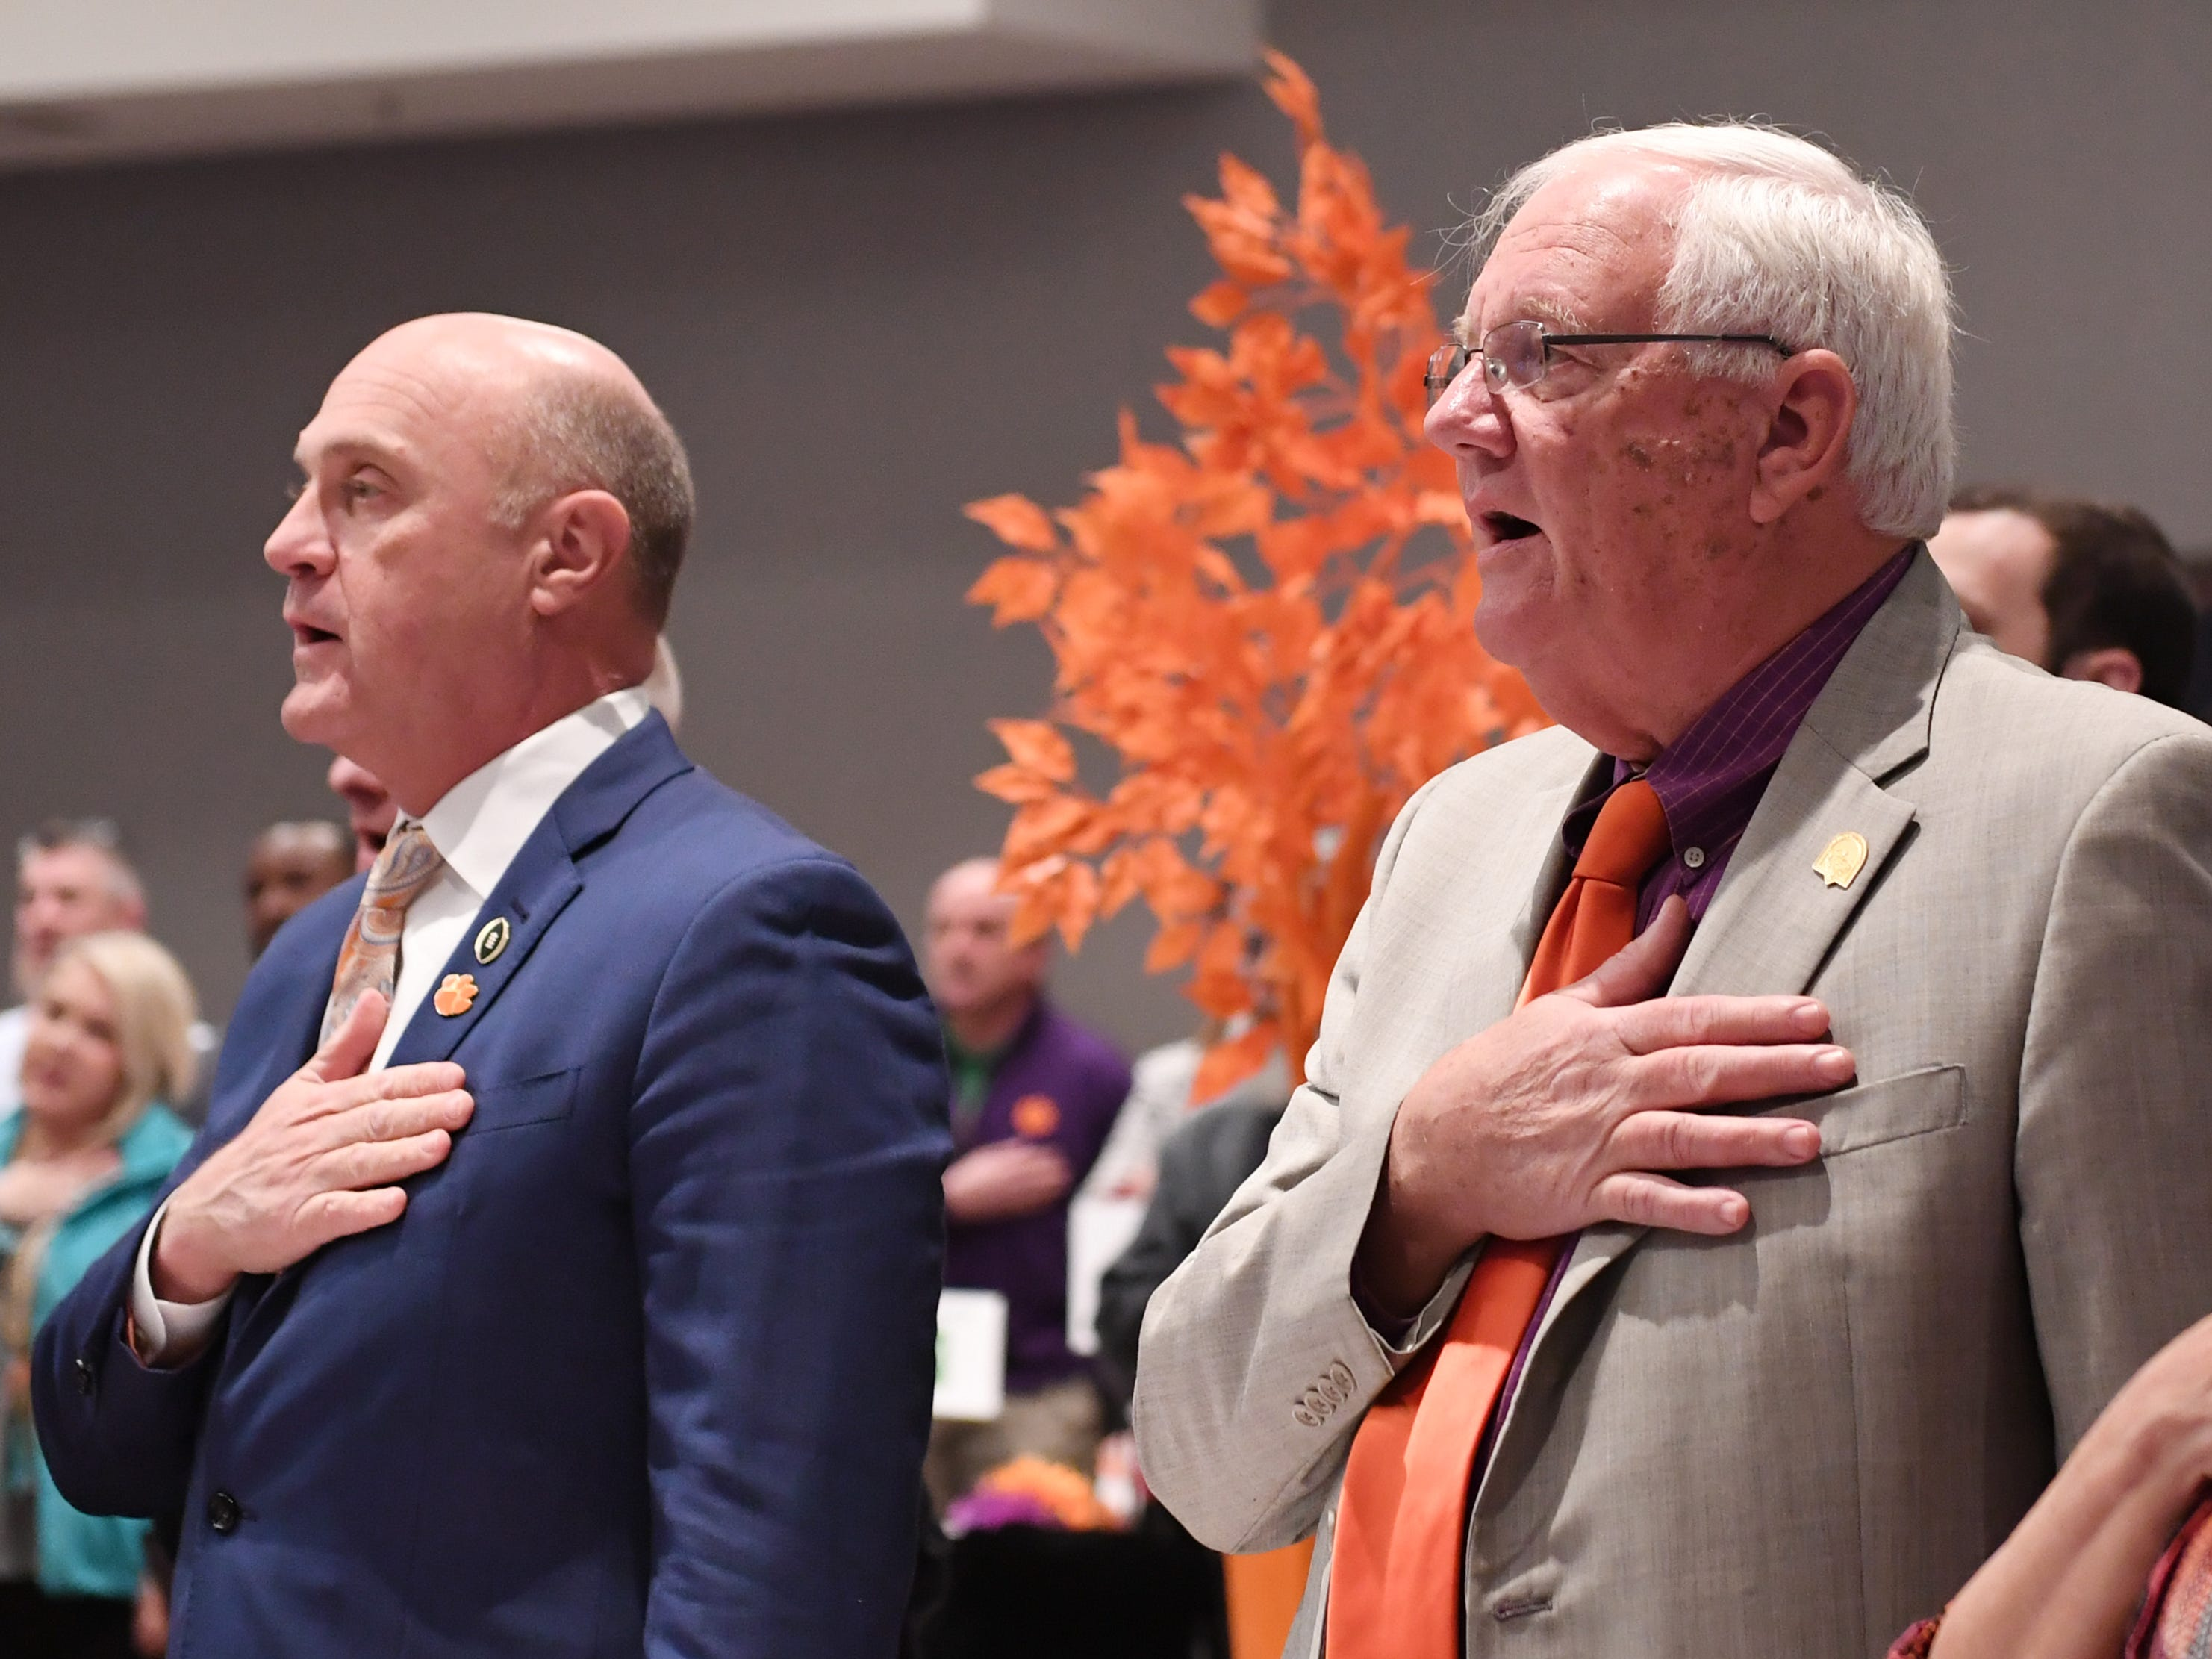 From left, Clemson University President James Clements and City of Clemson Mayor J.C. Cook stand for the Pledge of Allegiance at the start of the State of Clemson event held at the Madren Center Tuesday, Feb. 19, 2019.